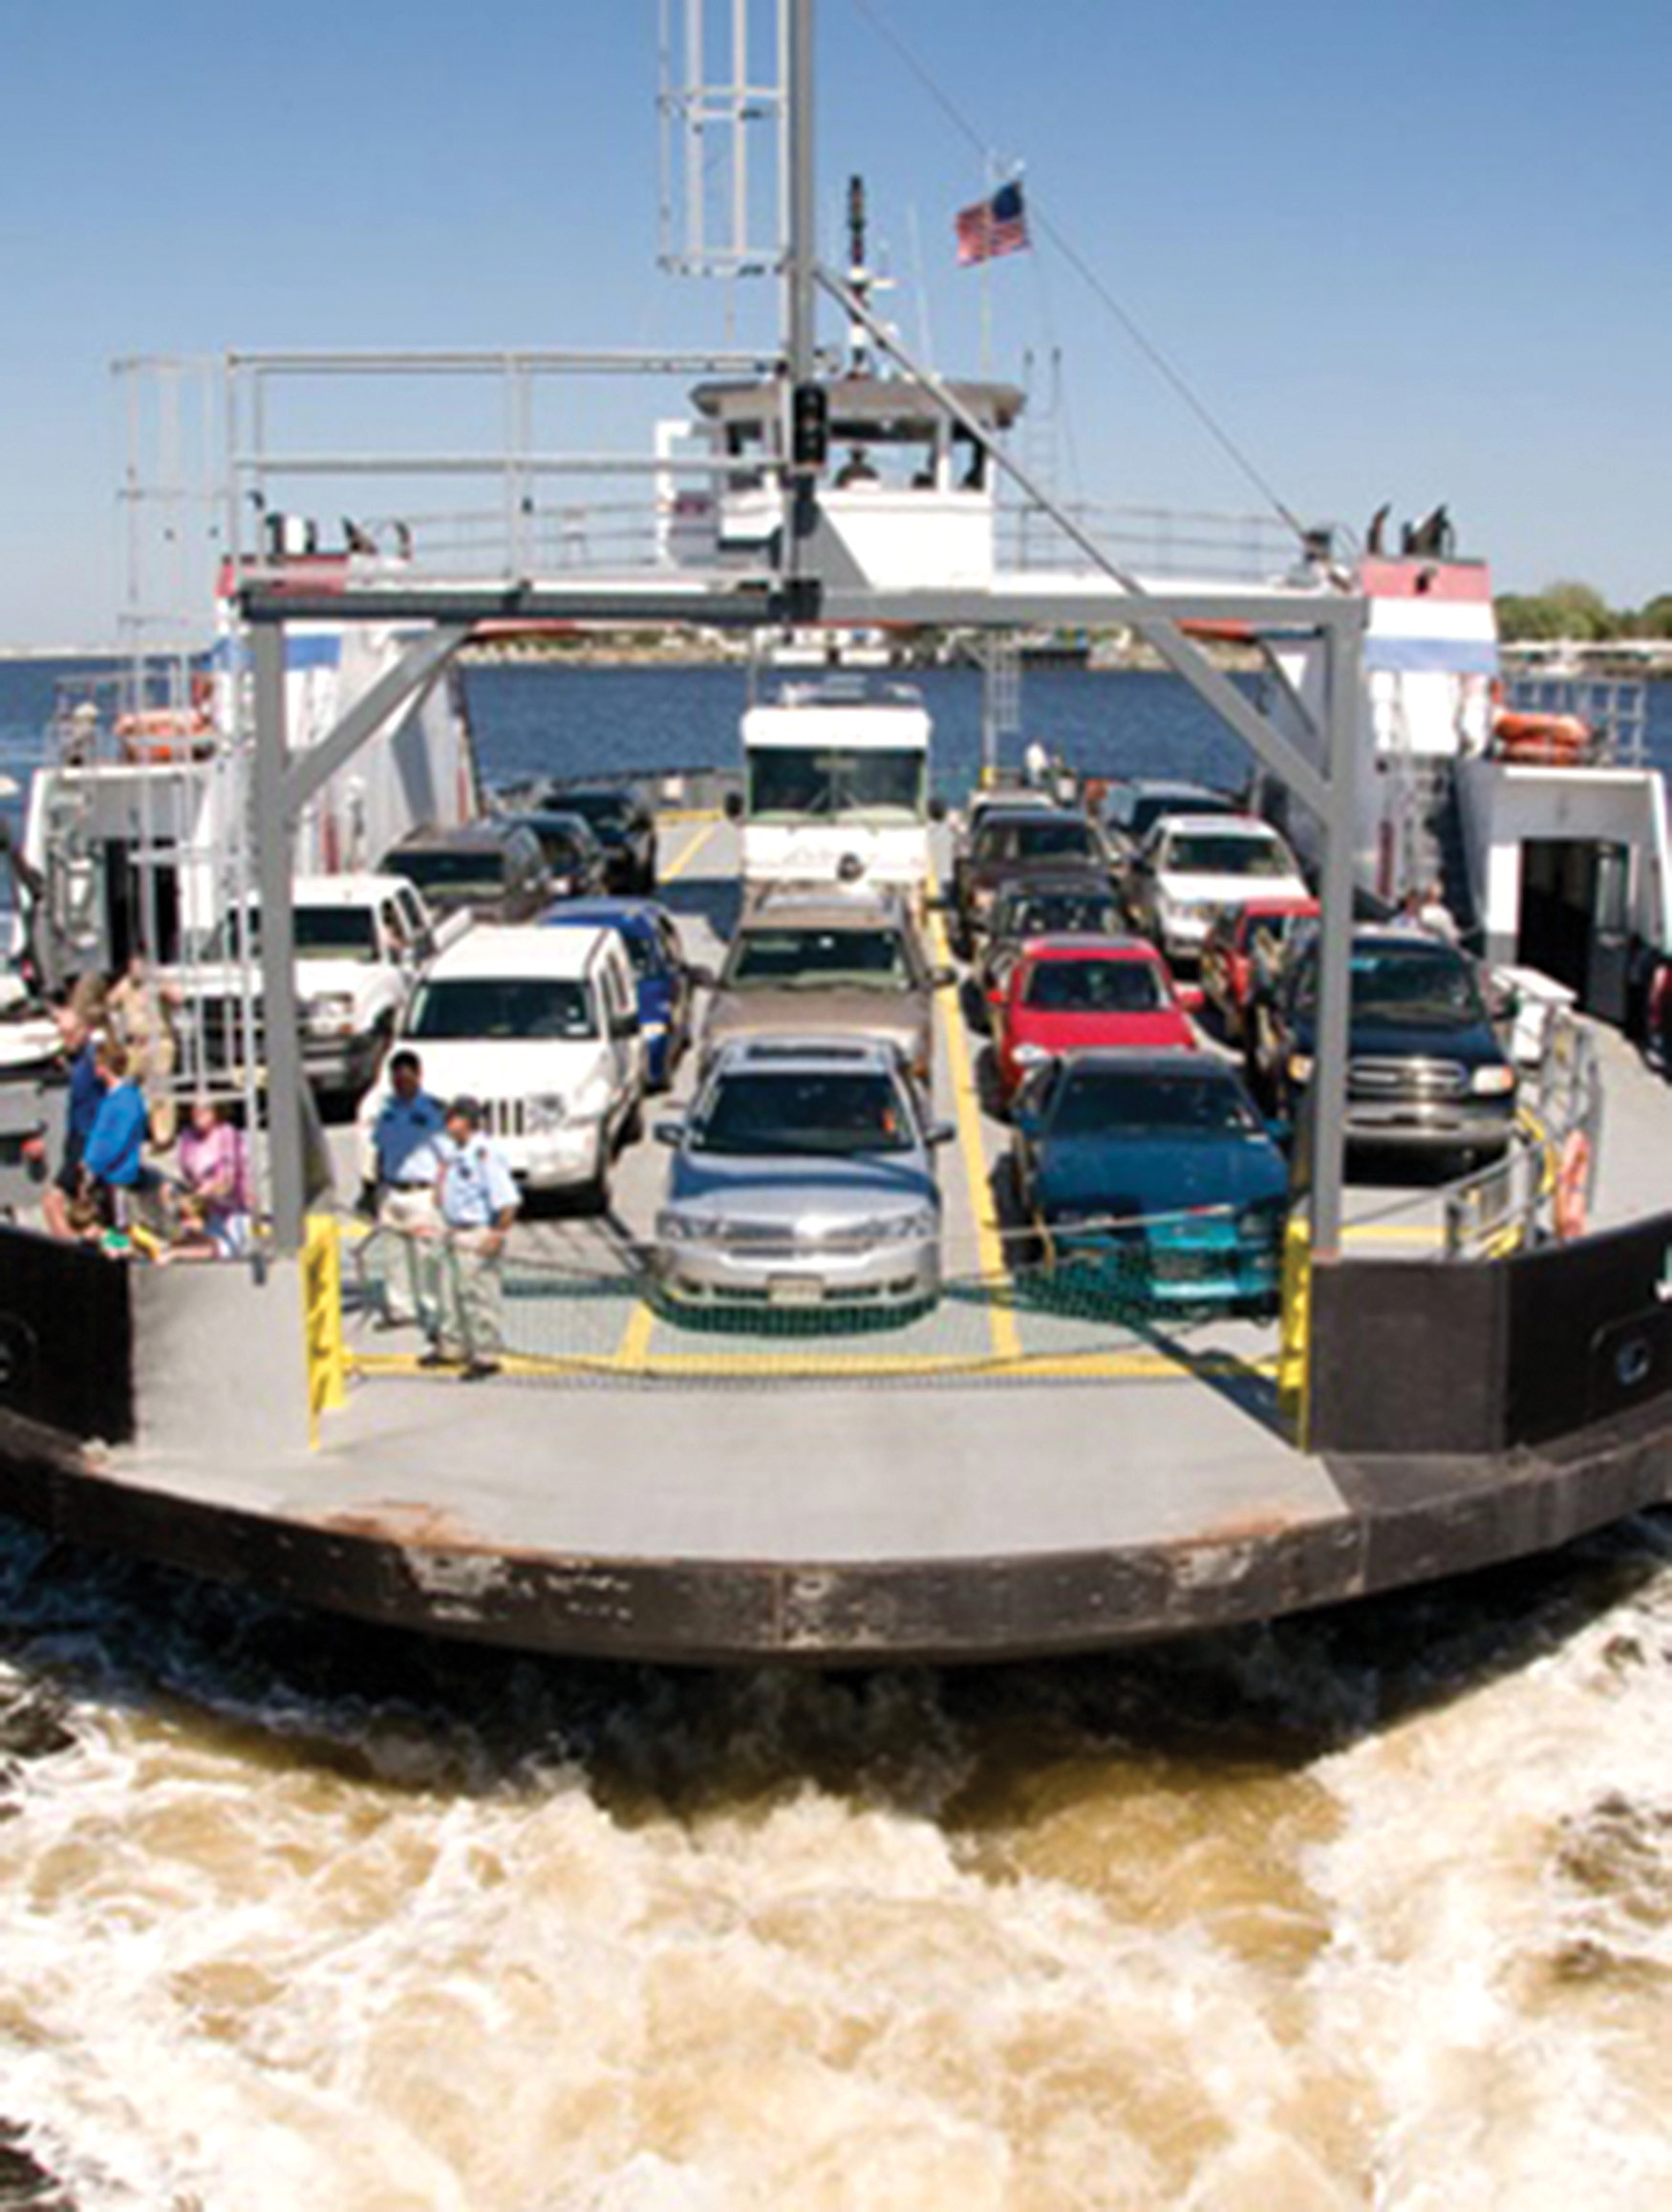 The St. Johns River Ferry is running out of money, and officials say it will take another infusion of cash to keep it operating after Oct. 1. City Councilman John Crescimbeni, St. Johns Ferry Commission chairman, told The Florida Times-Union the ferry will need a cash subsidy from the city budget. The ferry is on track to spend the $200,000 it received from the city and $200,000 from Jacksonville Port Authority, but the port has said it will not continue to support the ferry after Oct. 1. David DeCamp, a spokesperson for the mayor's office, said Mayor Alvin Brown will make a decision during the budget process.